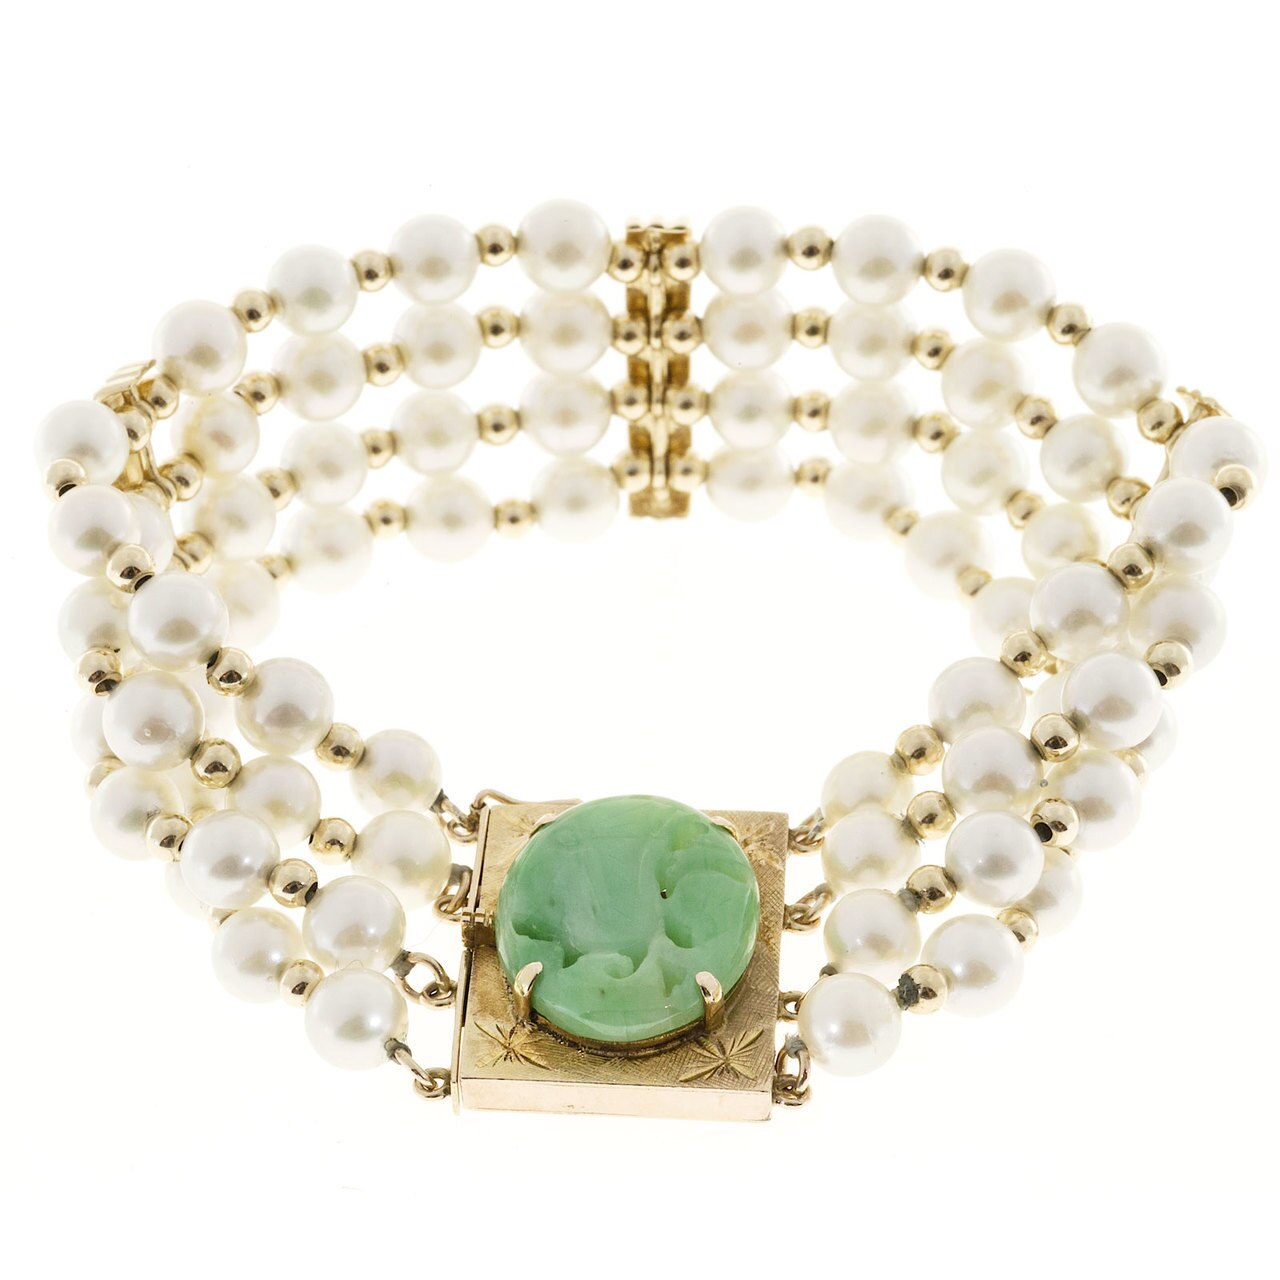 Trendy Timeless Pearls are In